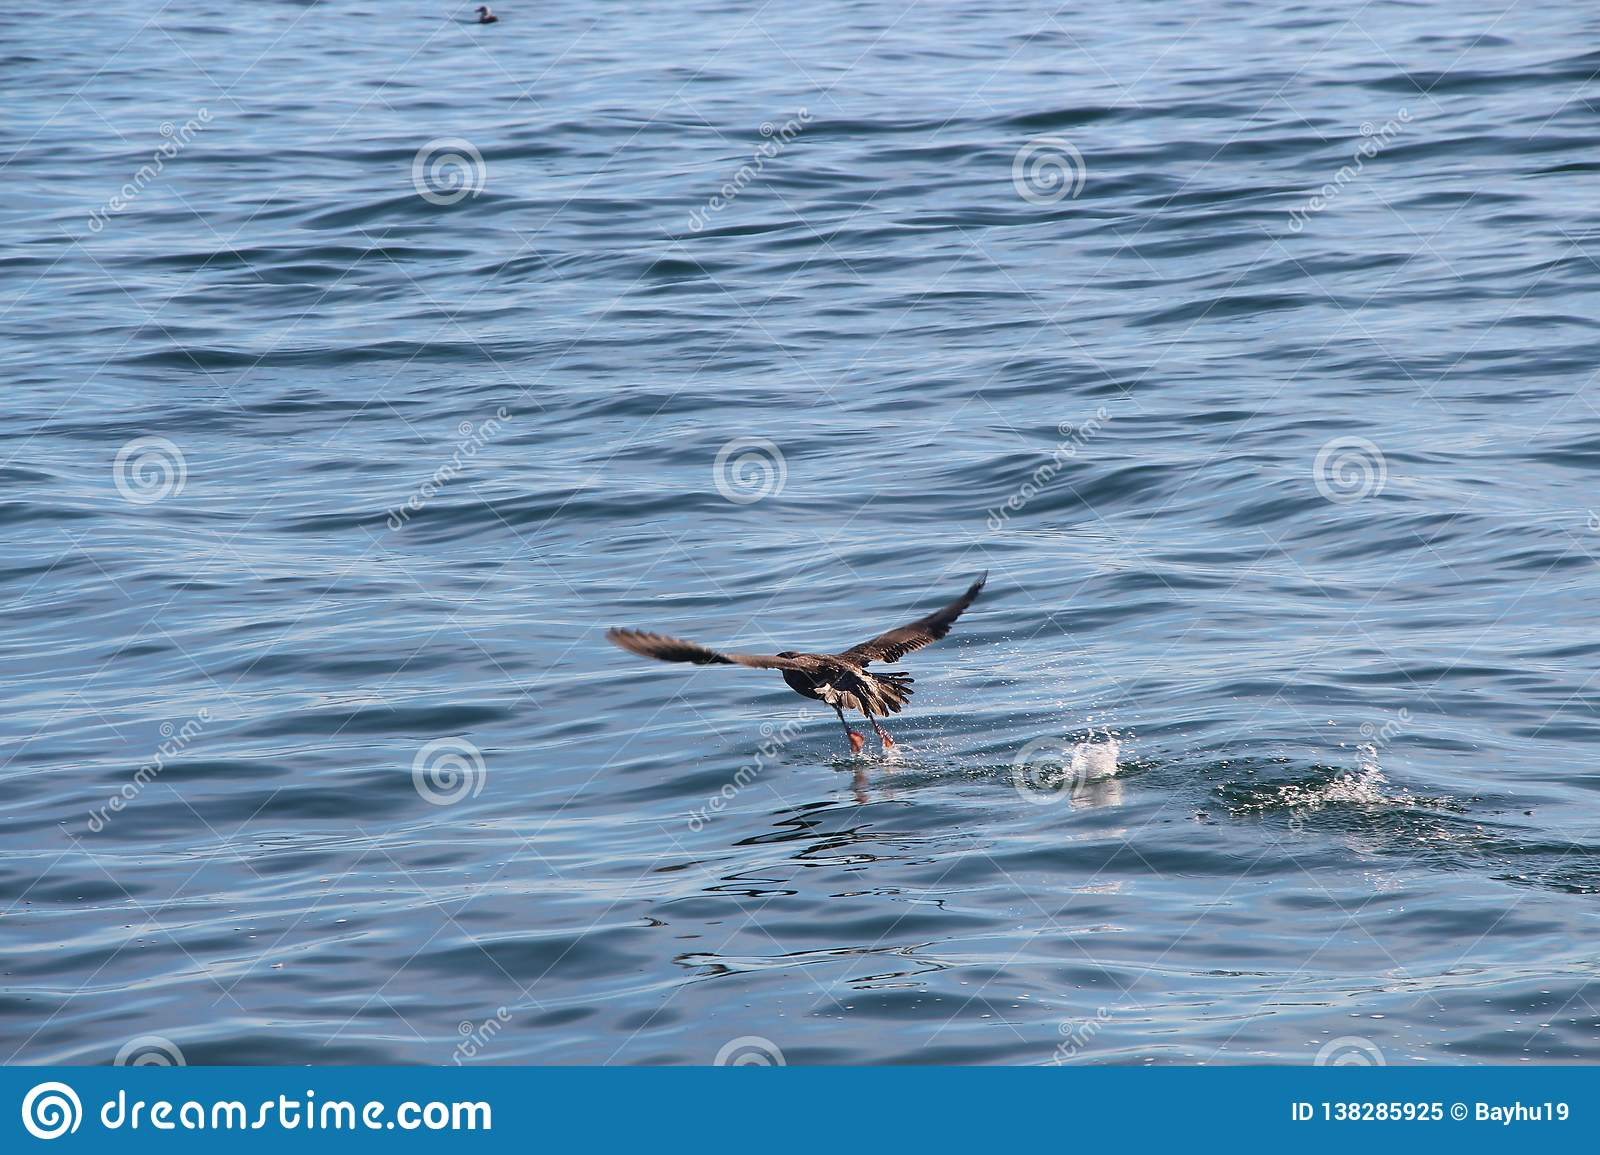 The pelagic cormorant Phalacrocorax pelagicus, also known as Baird`s cormorant, takes off from the water.